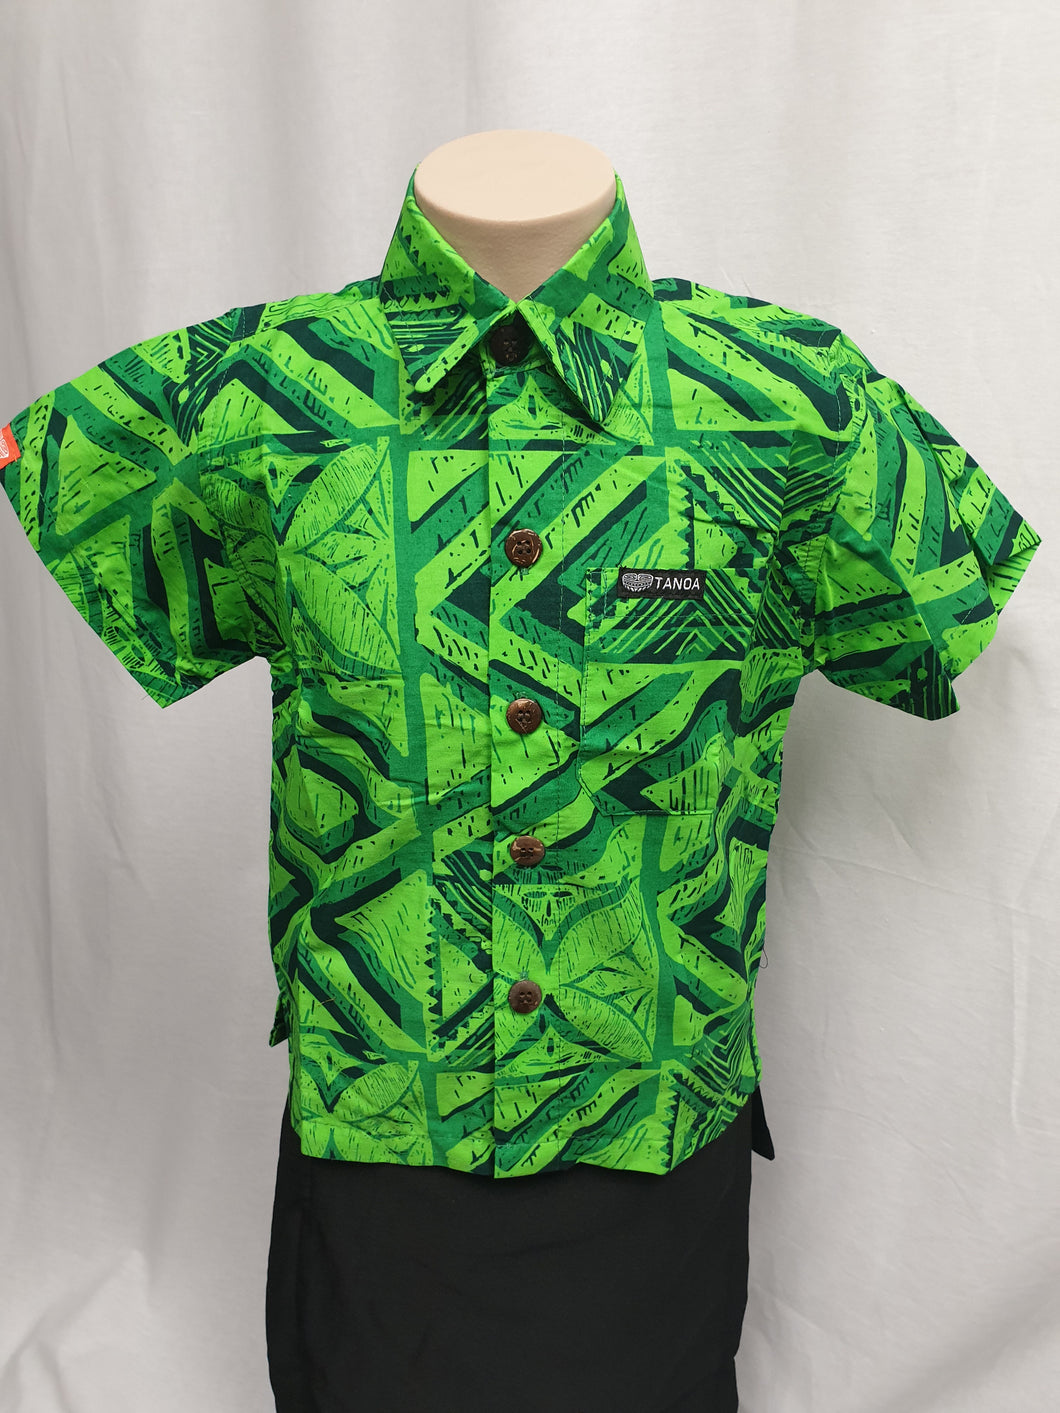 Tanoa Boys Bula Shirt-SB892-Green